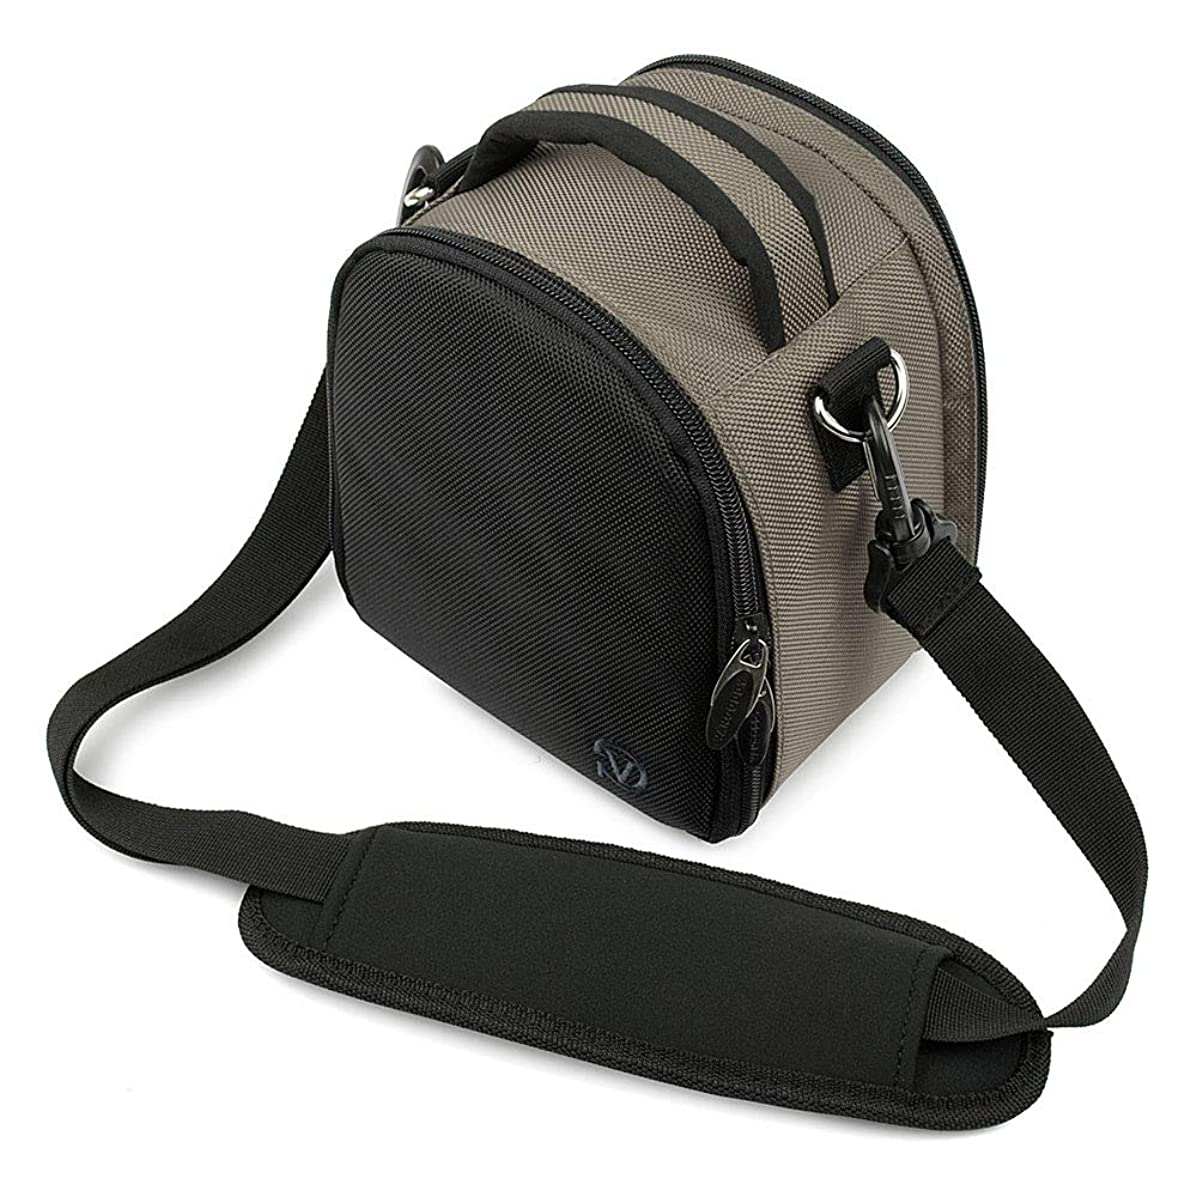 Water Resistant Protective Camera Lens Steel Grey Bag w/Shoulder Strap for Sigma DP0 DP1 DP2 DP3 Quattro SD1 Merrill